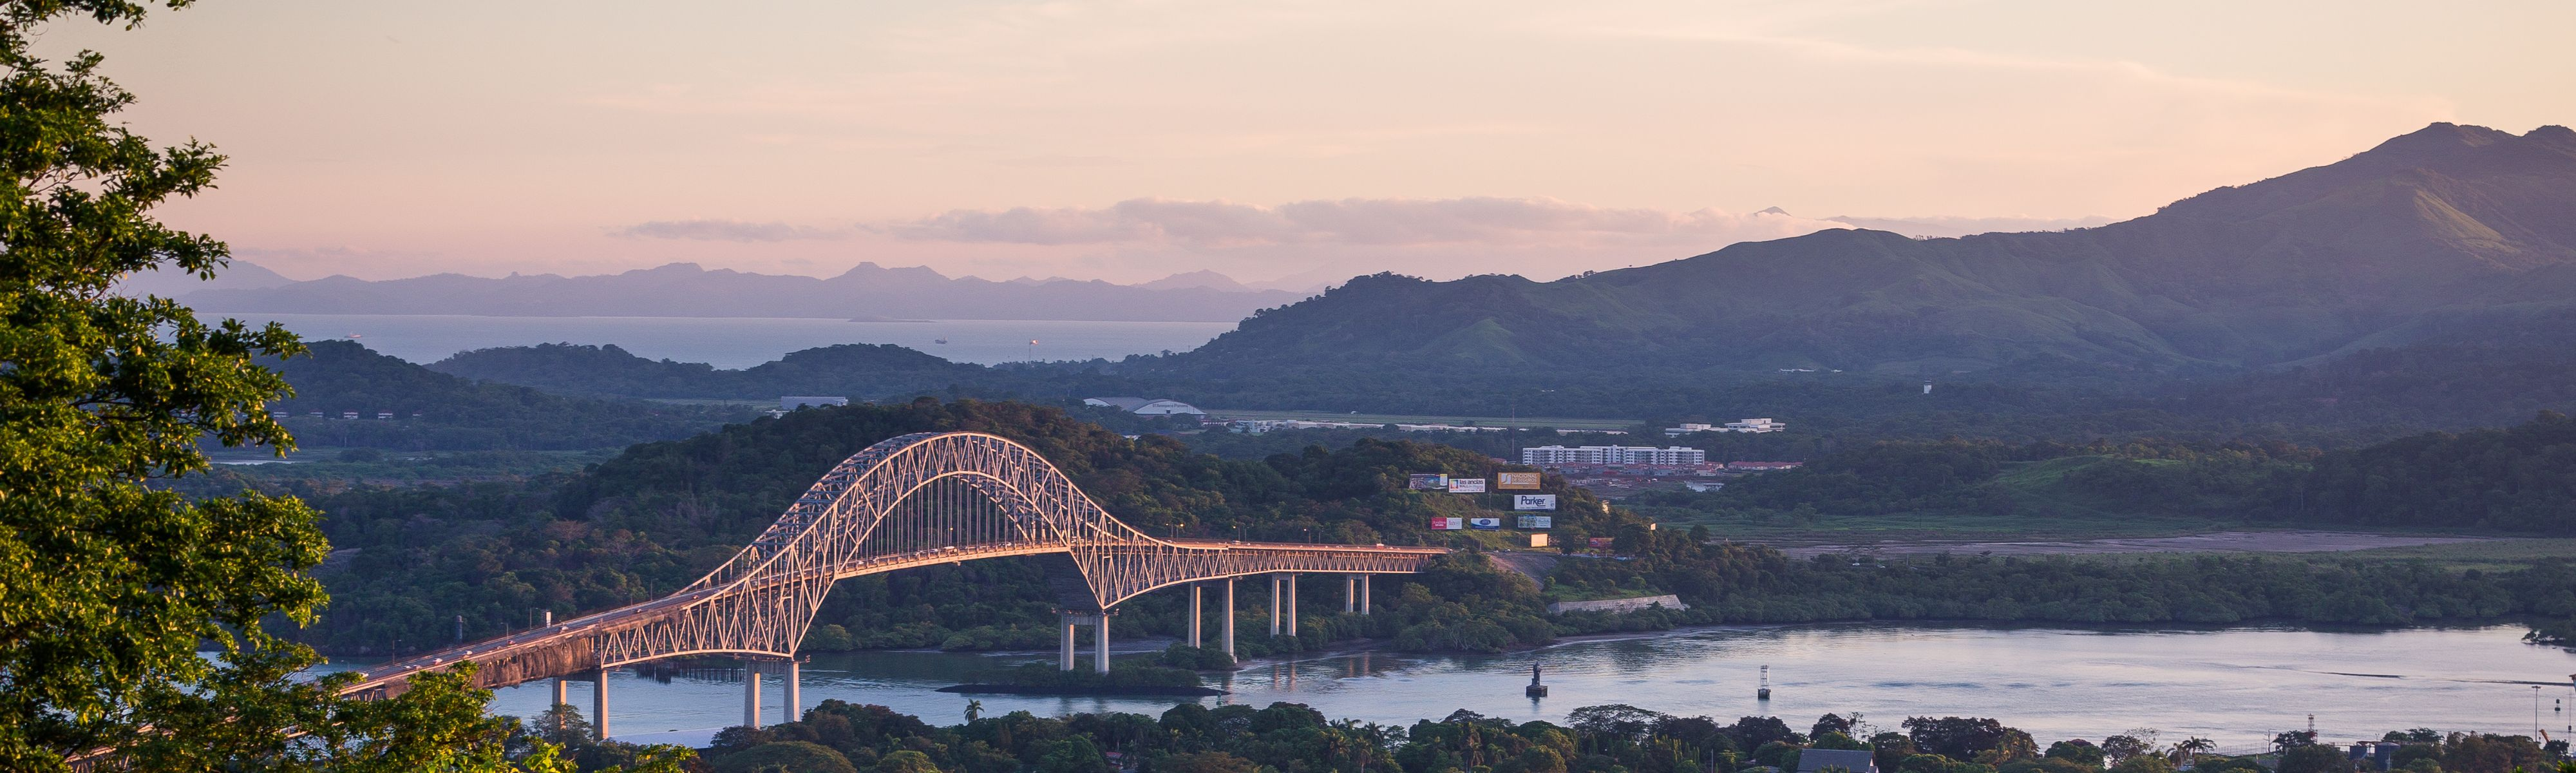 bridge over the panama canal in panama at sunset